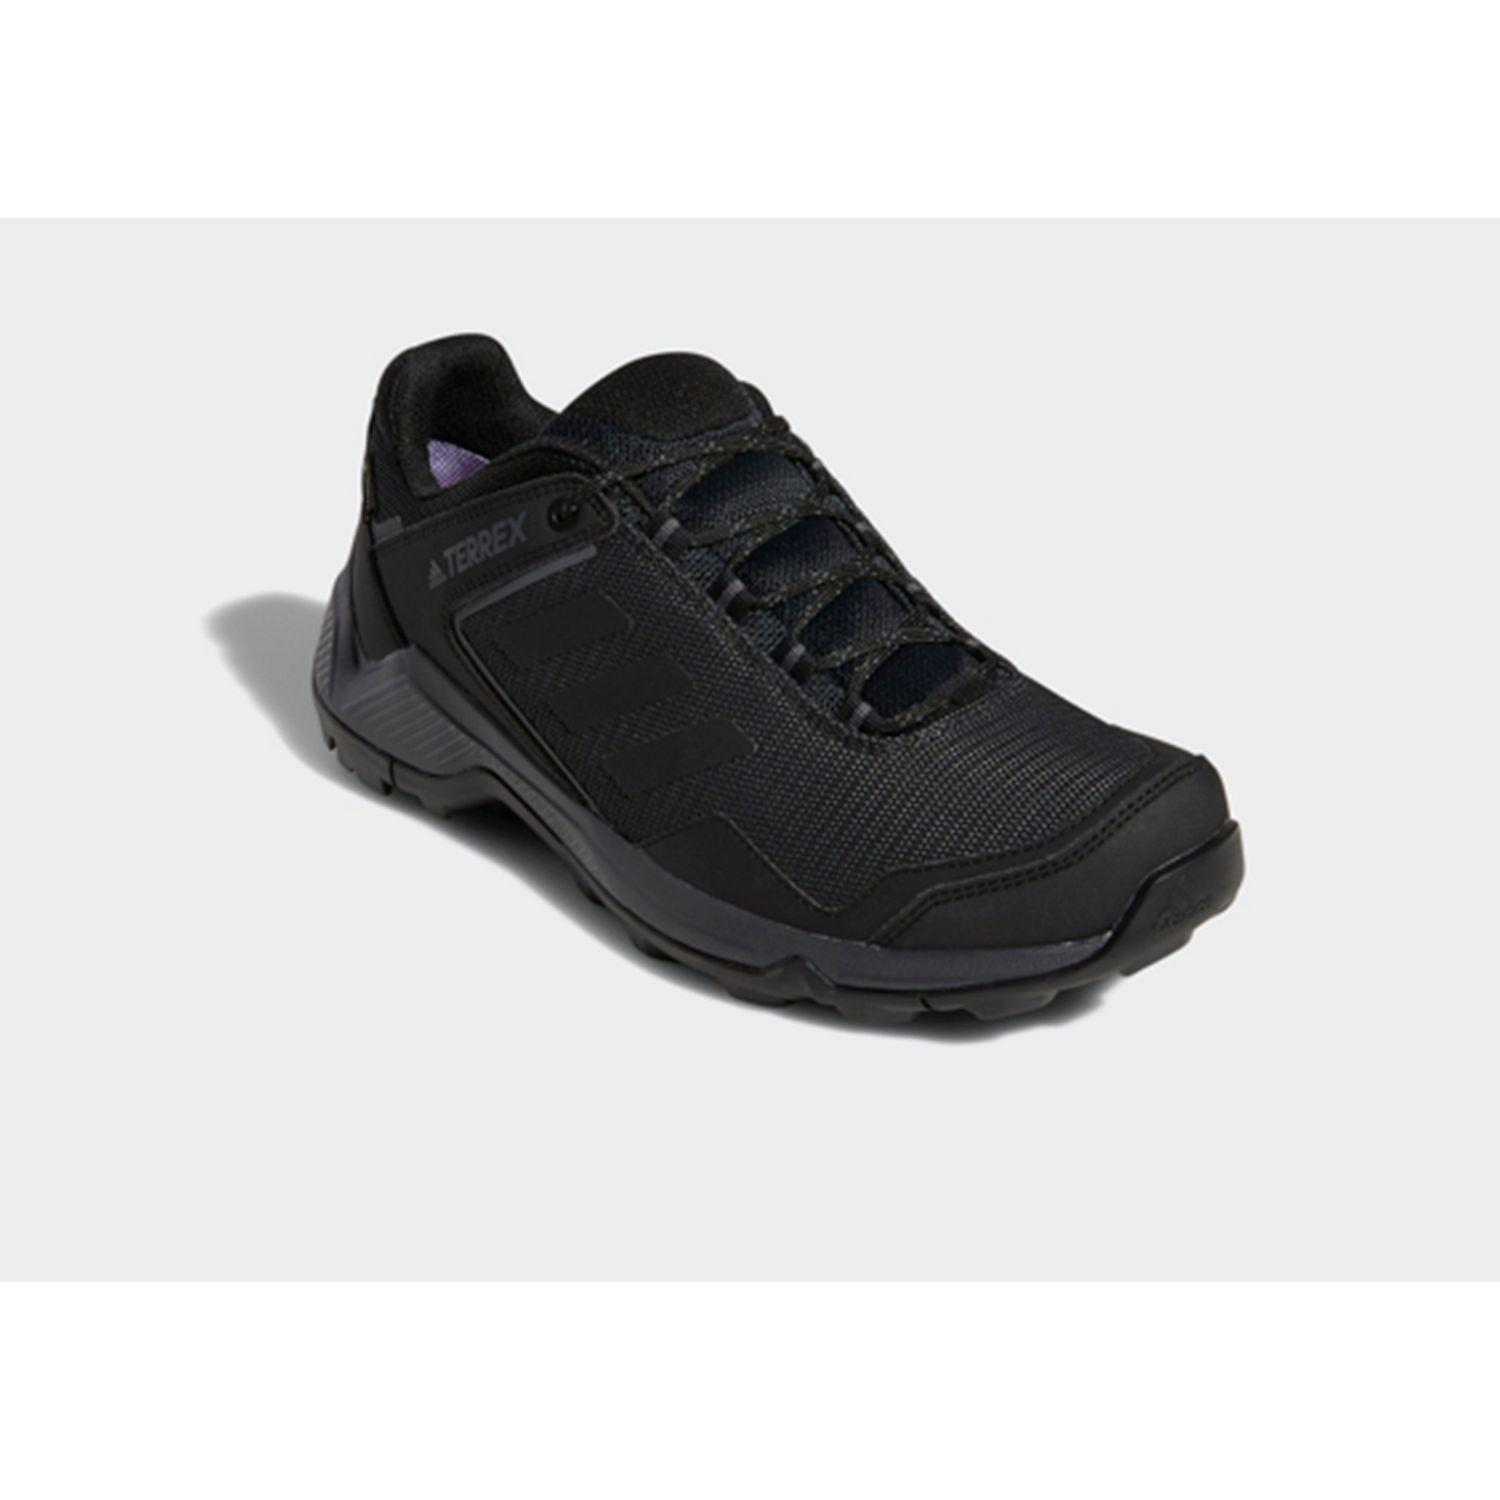 best authentic fa9ea bf9a1 adidas Terrex Eastrail Gtx Shoes in Black for Men - Lyst